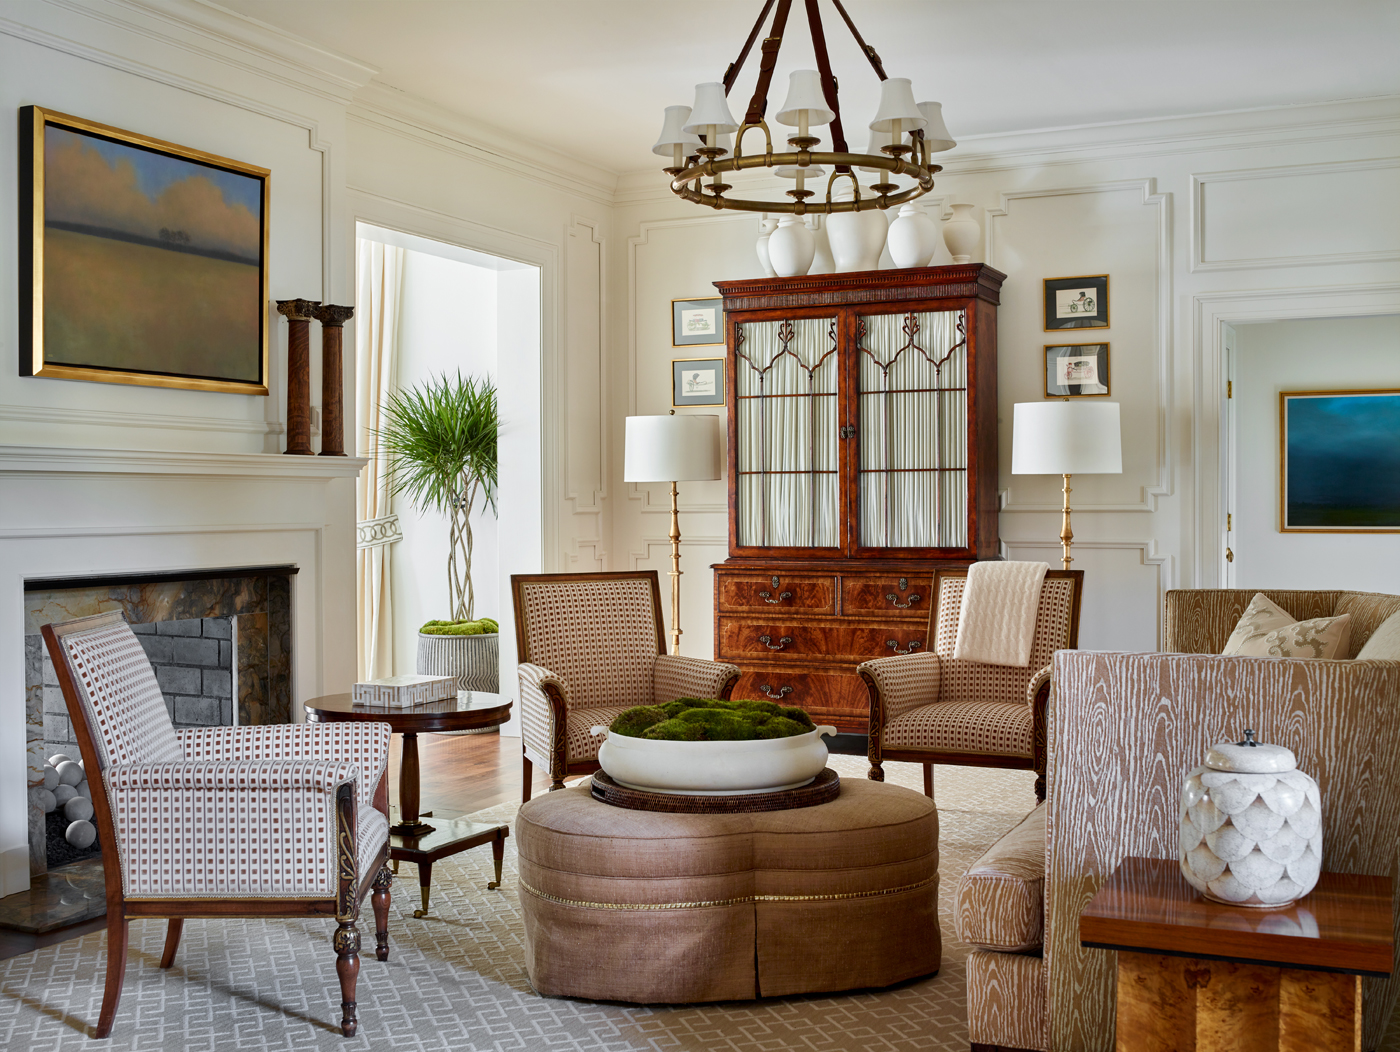 Formal living room with Hickory Chair cloverleaf ottoman and Malbec sofa in Carleton V Ltd faux bois chenille | Savage Interior Design